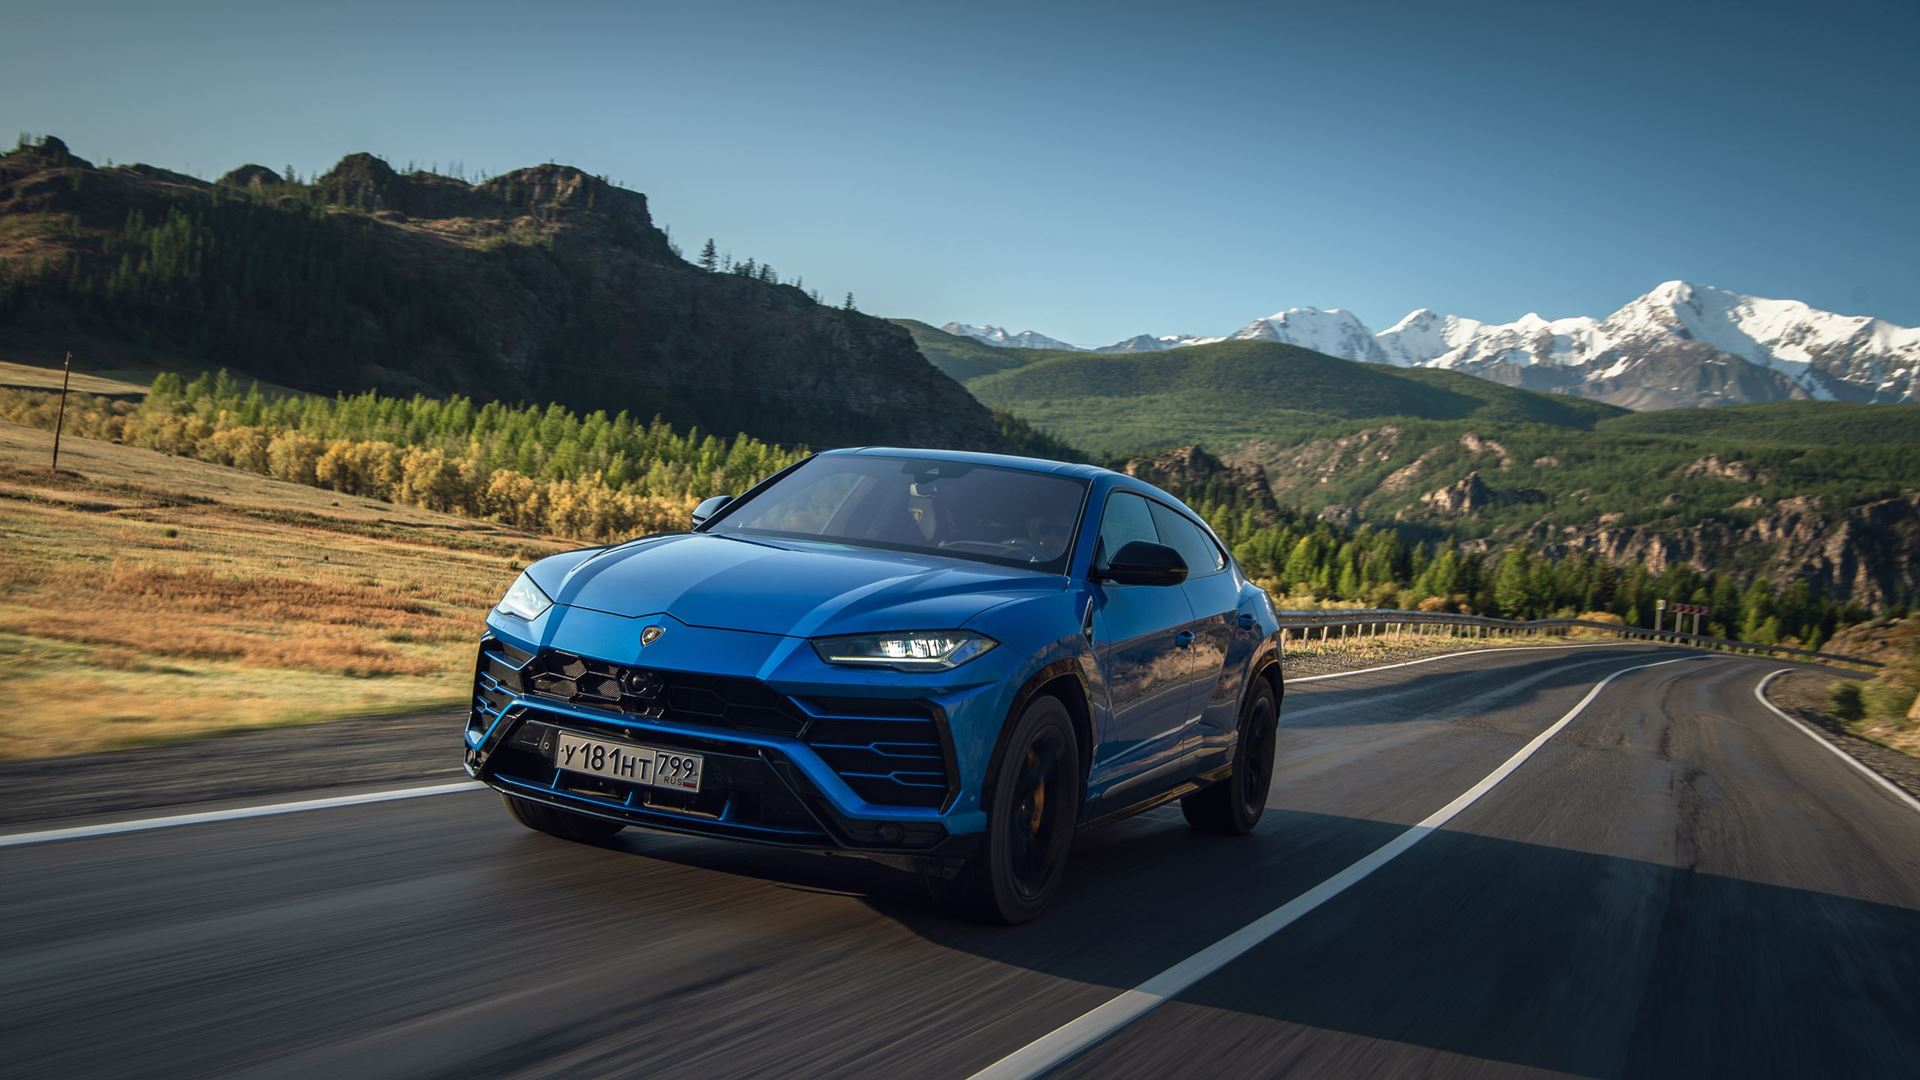 Lamborghini Urus: 6 driving modes to enjoy the Super SUV in 6 different ways - Image 6